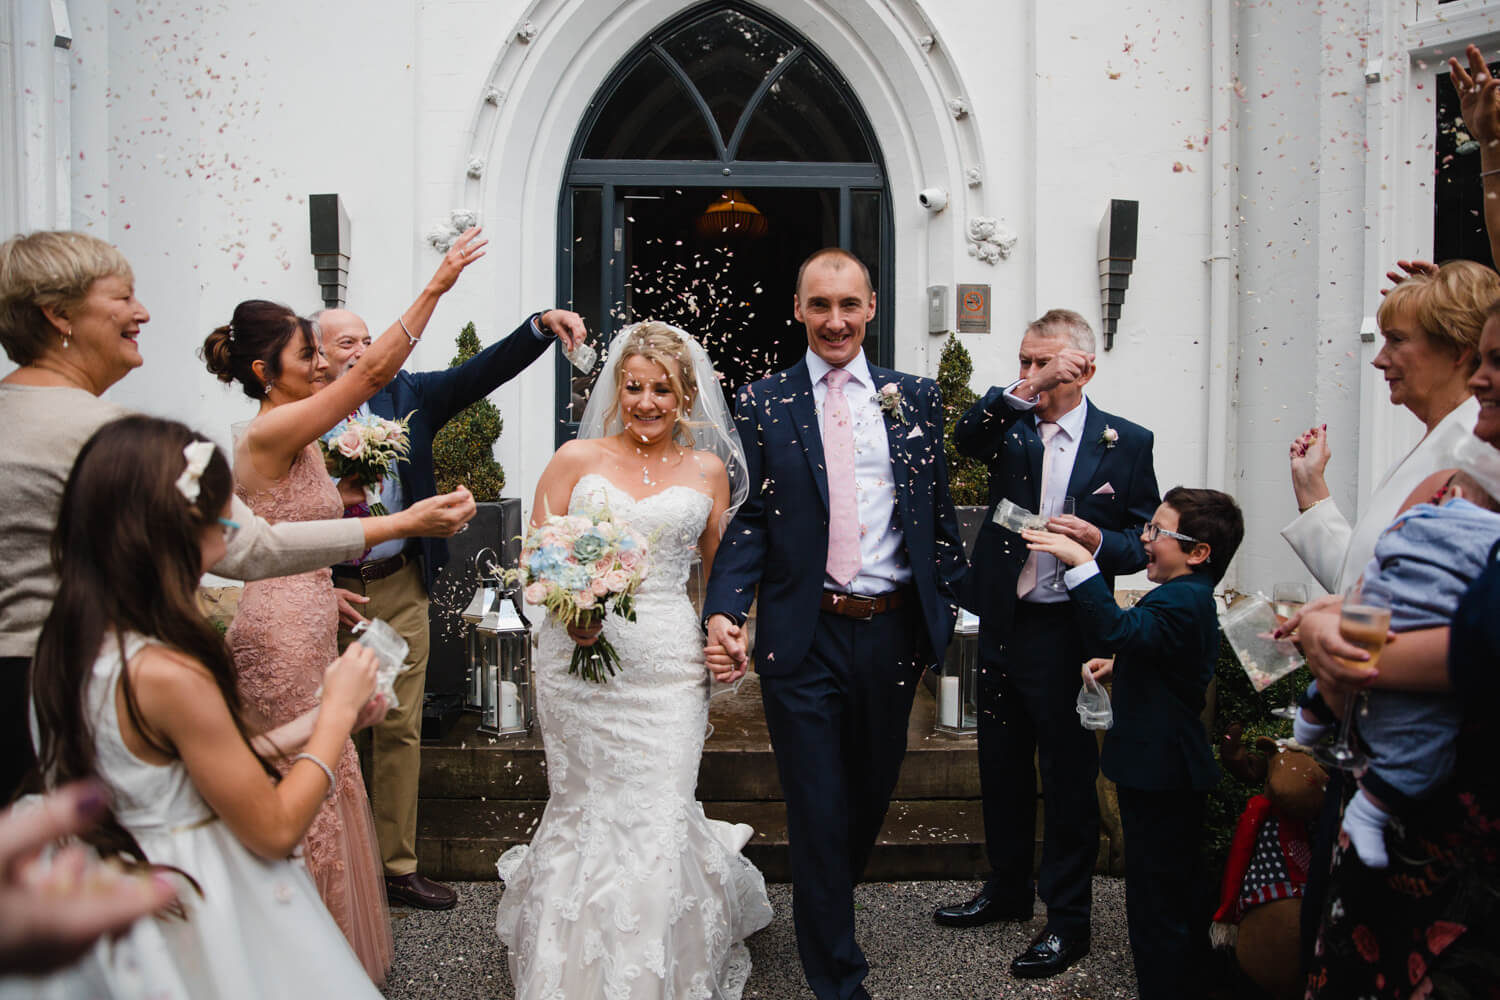 bride and groom showered with confetti in doorway of didsbury house hotel